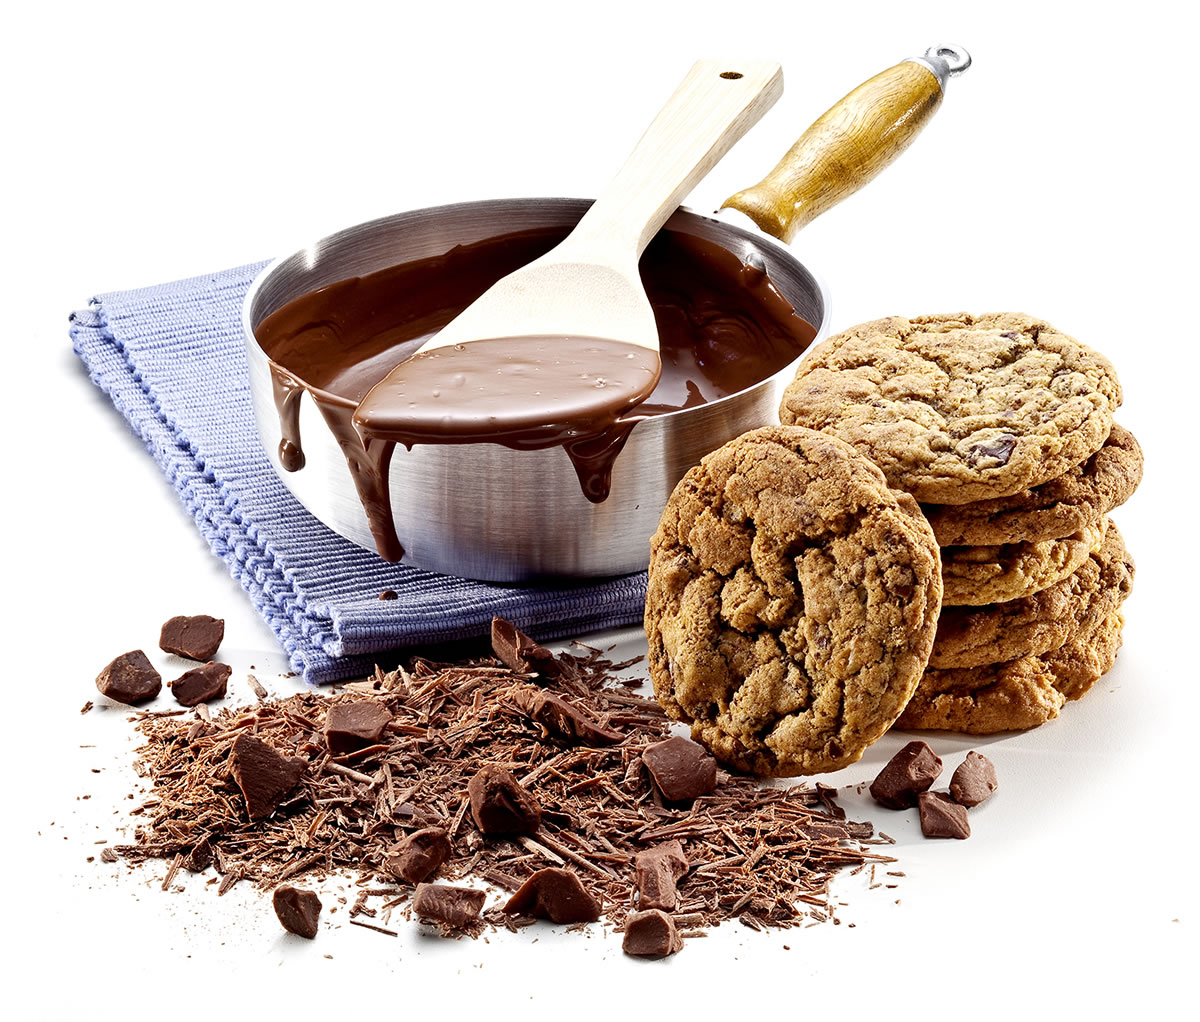 notícia, gourmetice, mr. cheney, cookie store, cookies, cookie, porto alegre, poa, rs, chocolate, loja